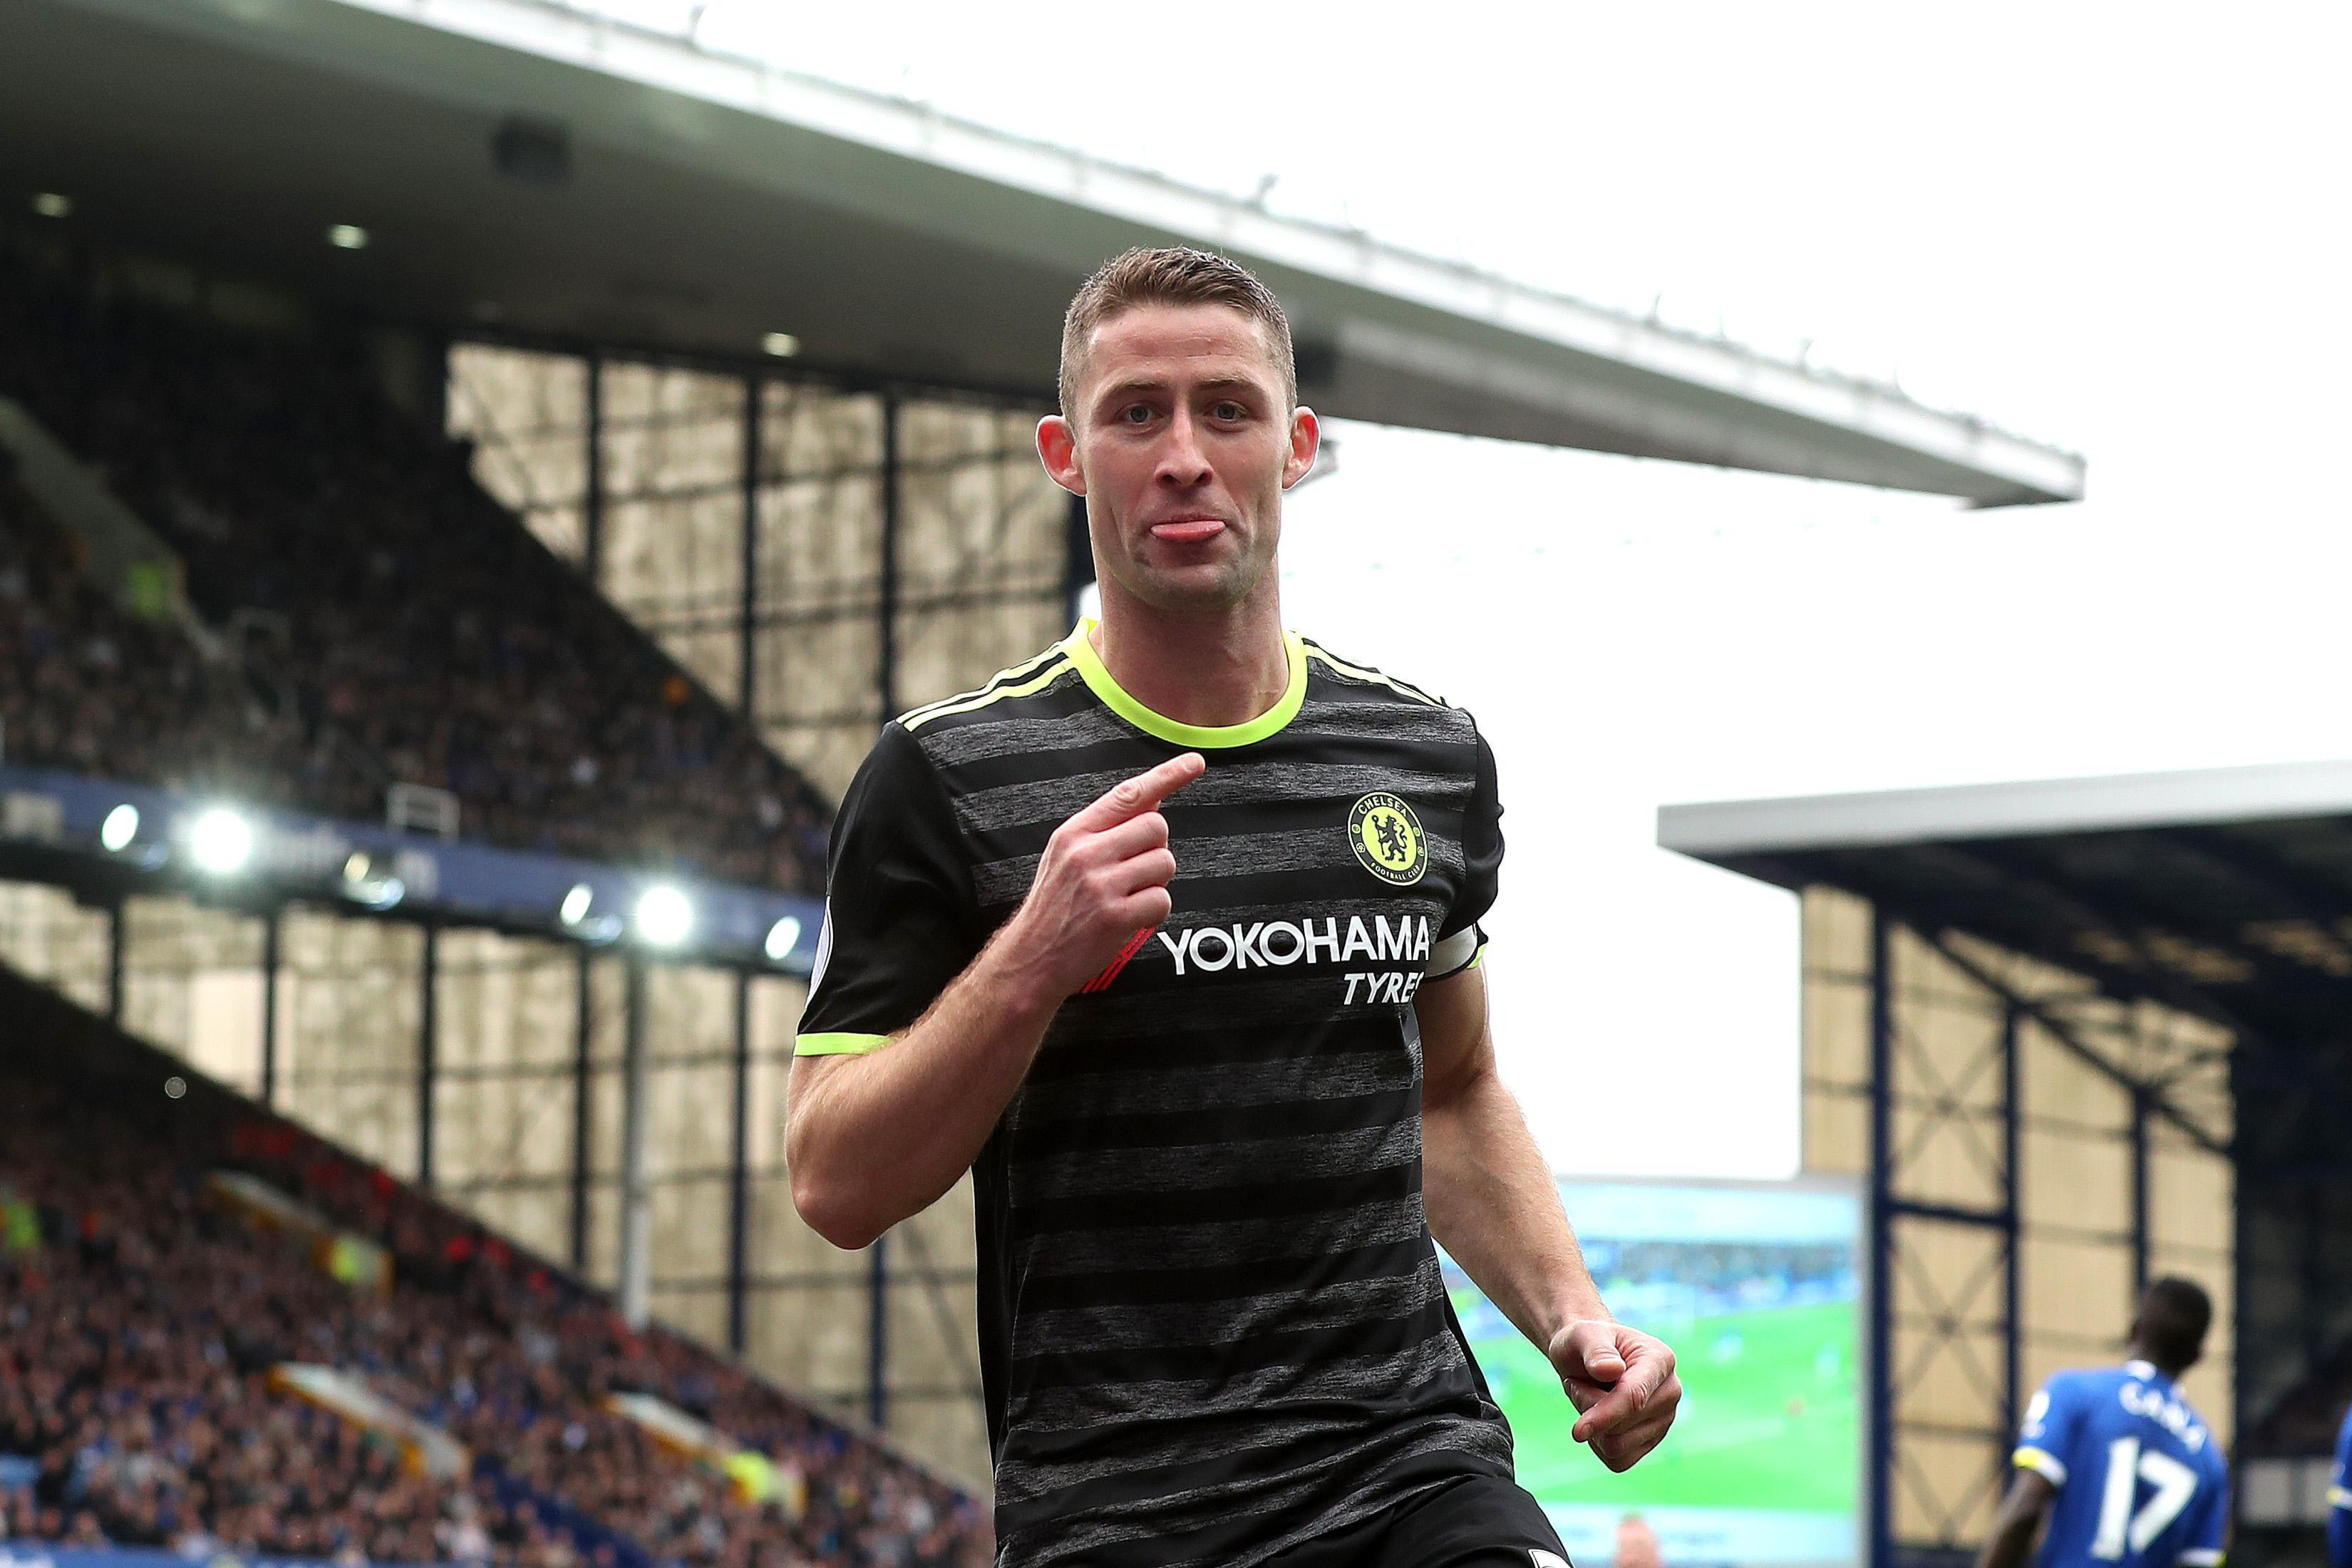 Gary Cahill has been a regular goalscorer as well as solid at the back